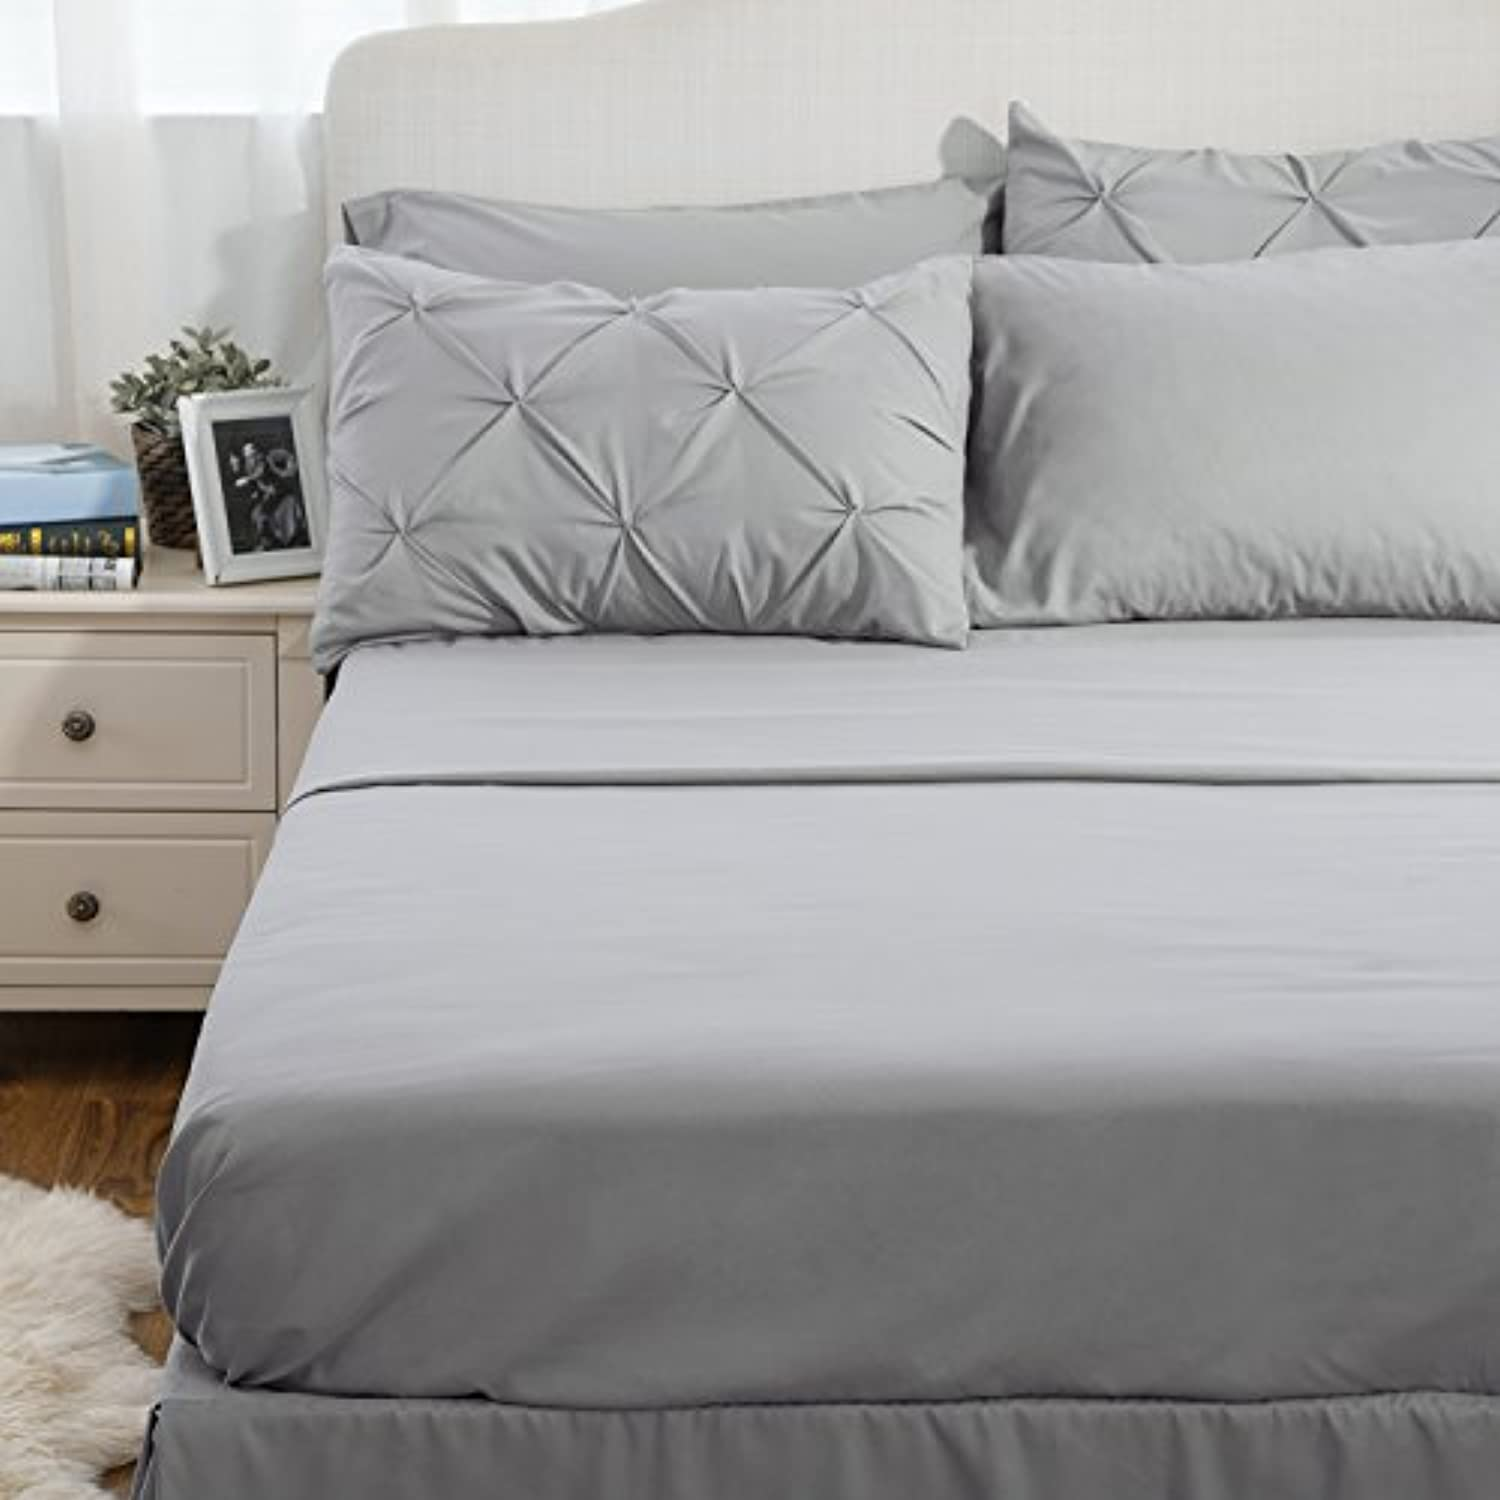 Classier: Buy Bedsure Bedsure Comforter Set Queen/Full Bed in A Bag Grey 8 Pieces - 1 Pinch Pleat Comforter(88X88 inches), 2 Pillow Shams, 1 Flat Sheet, 1 Fitted Sheet, 1 Bed Skirt, 2 Pillowcases